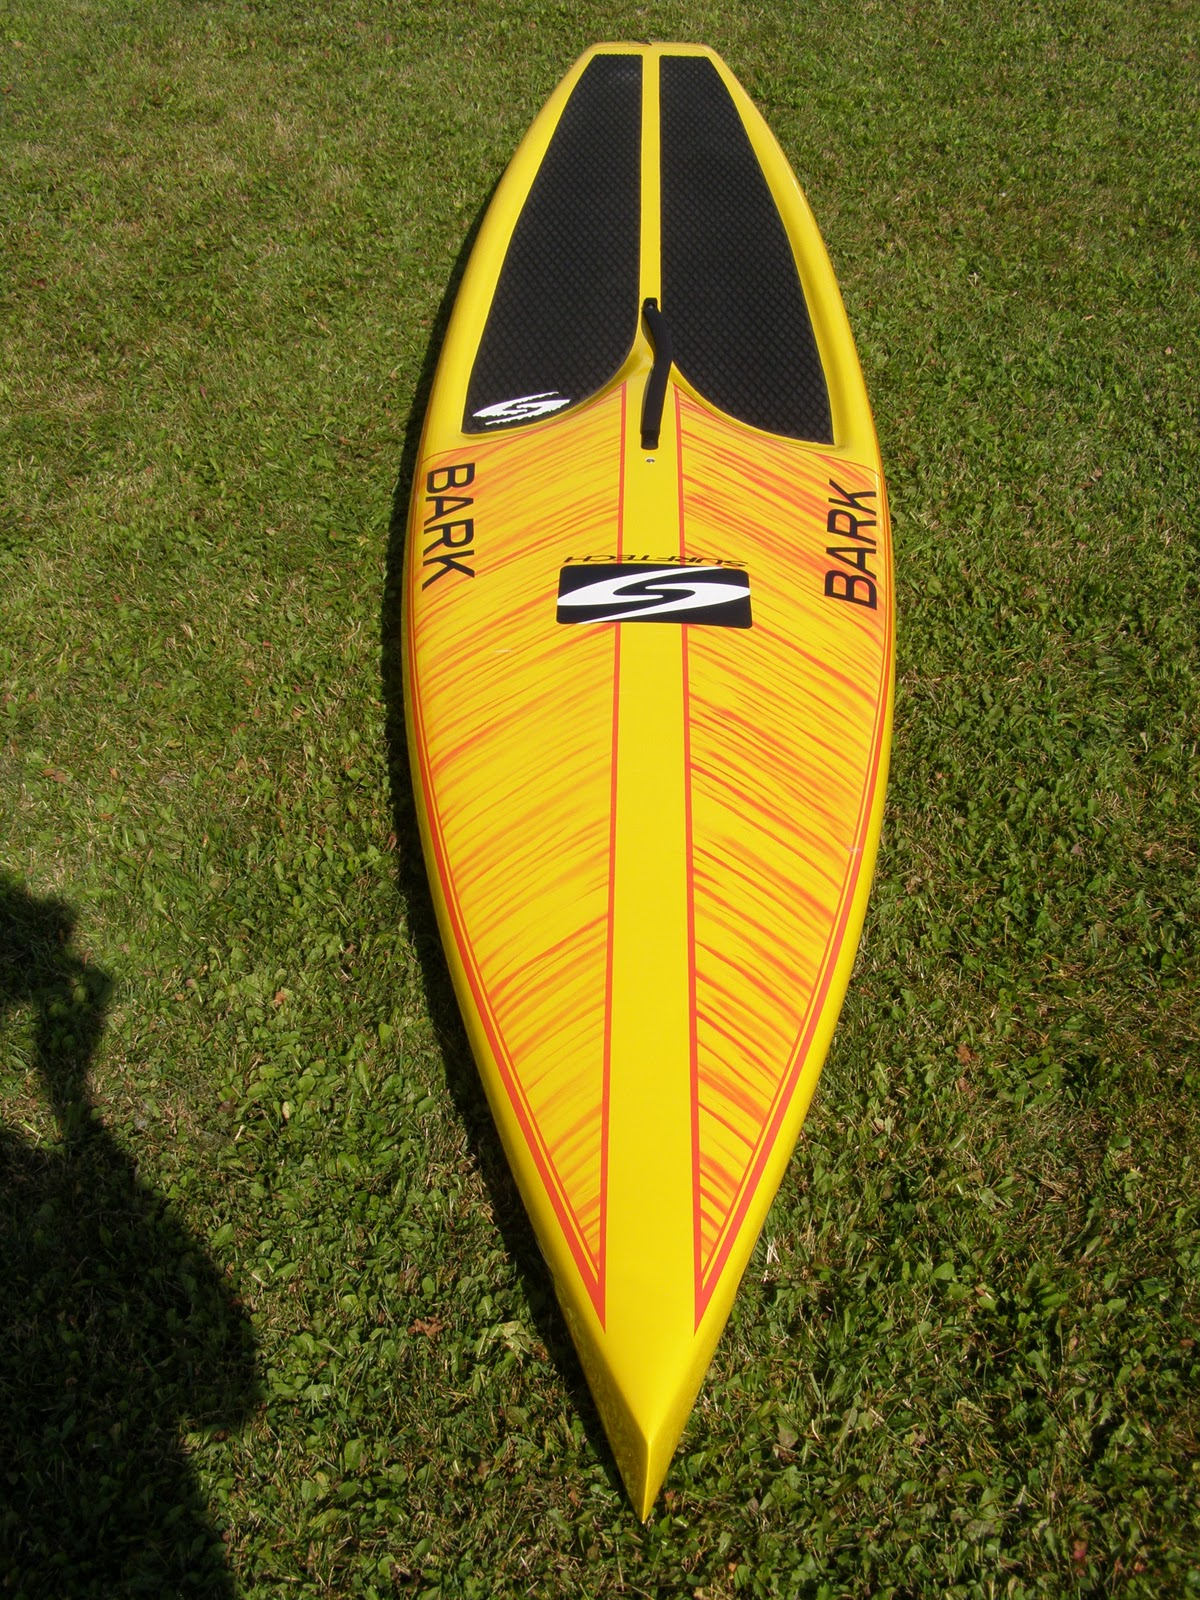 Paddleboard Direct Canadian Warehouse Clearance 2011